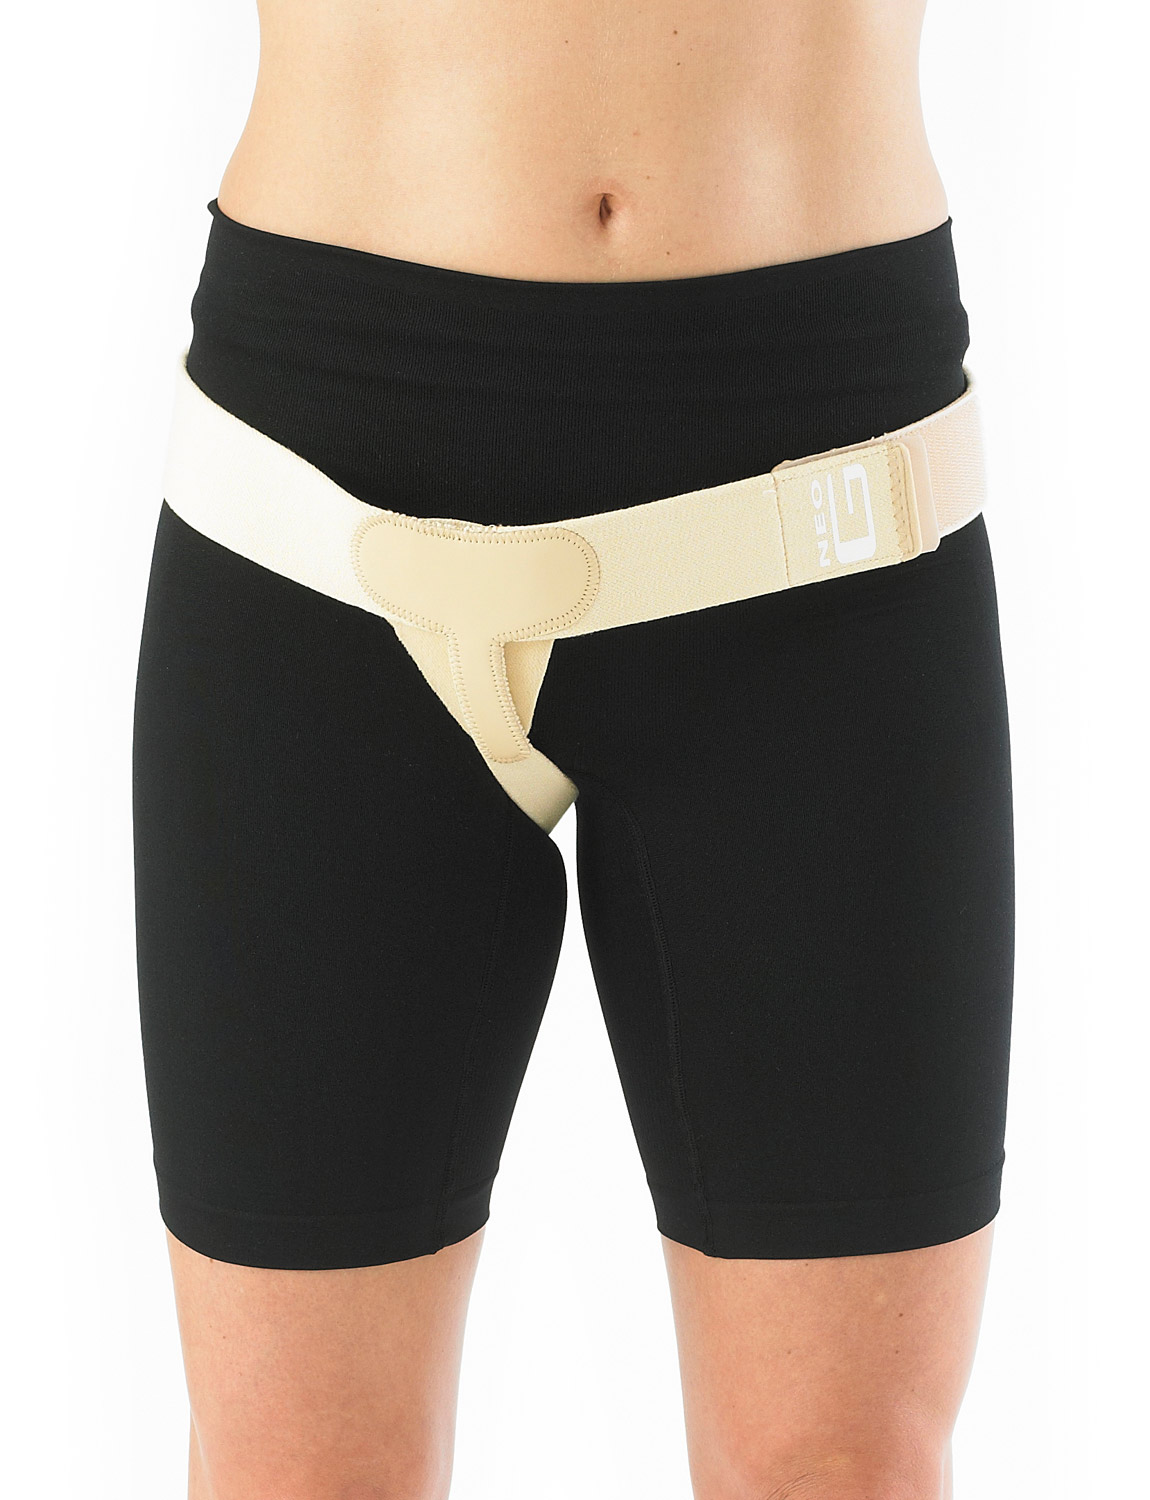 601 -LOWER HERNIA SUPPORT  Lower Hernia Support helps provide gentle and gradual pressure to reduce right or left sided inguinal hernias. It helps reduce symptoms of recurrent bulge on exertion and strain involved in lifting and forward bending for example.